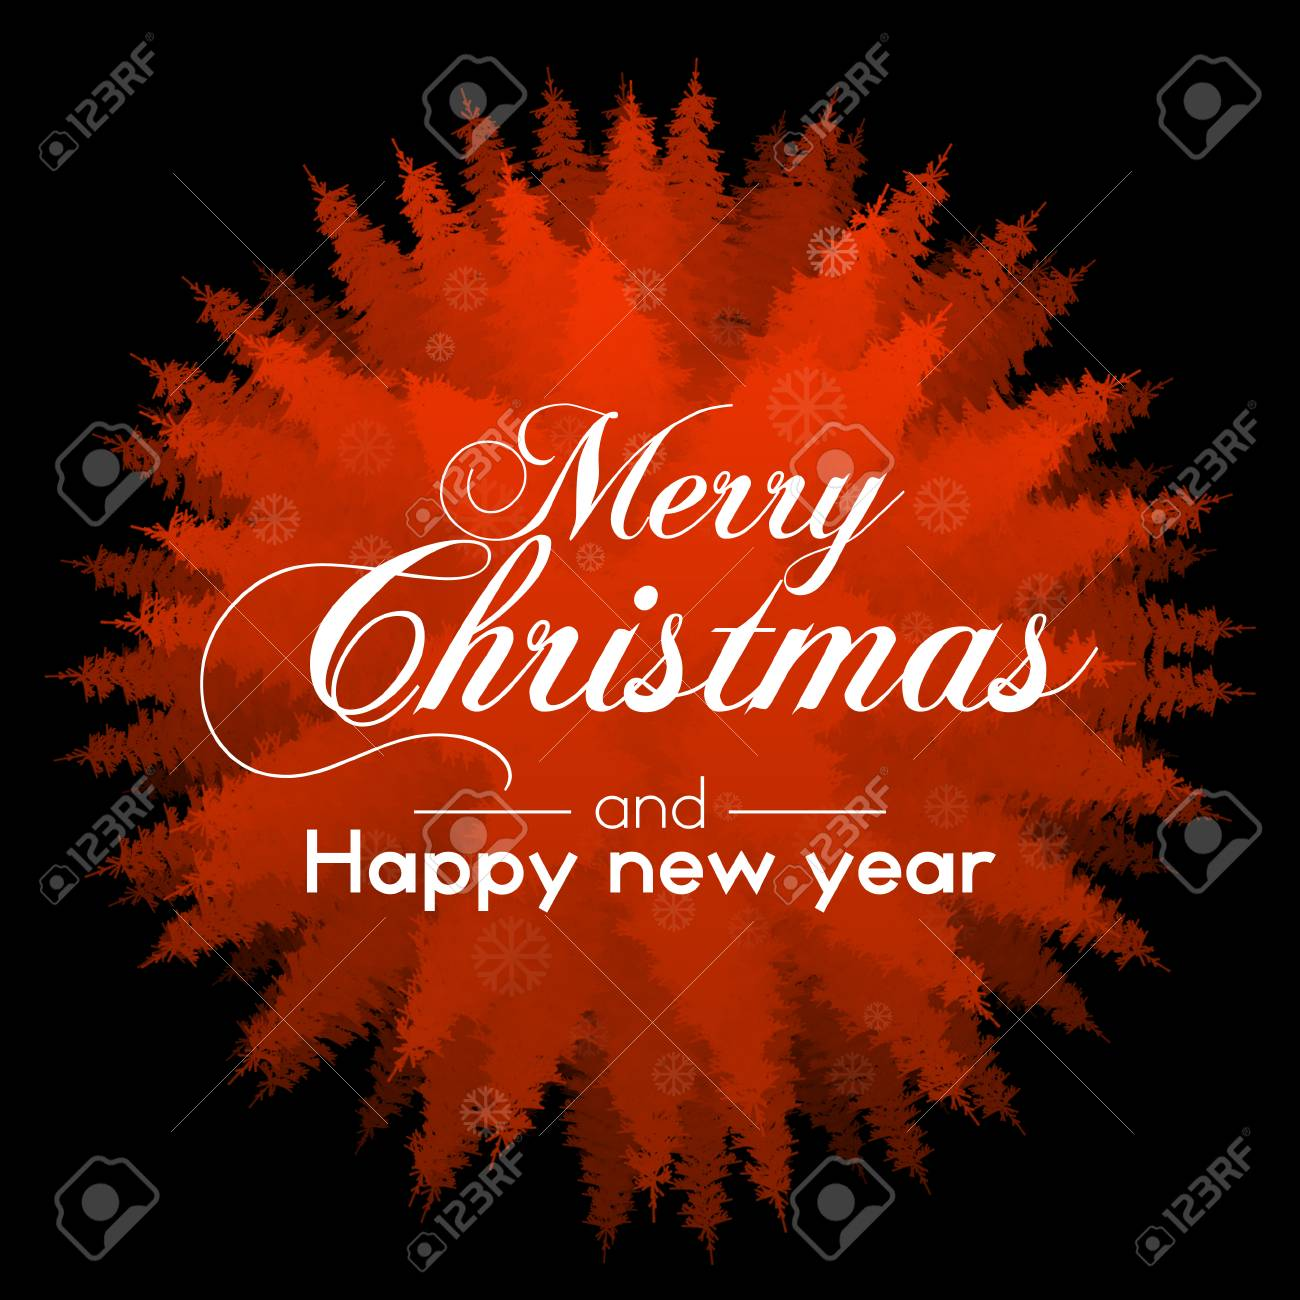 season greetings with text merry christmas and happy new year stock photo 111757103